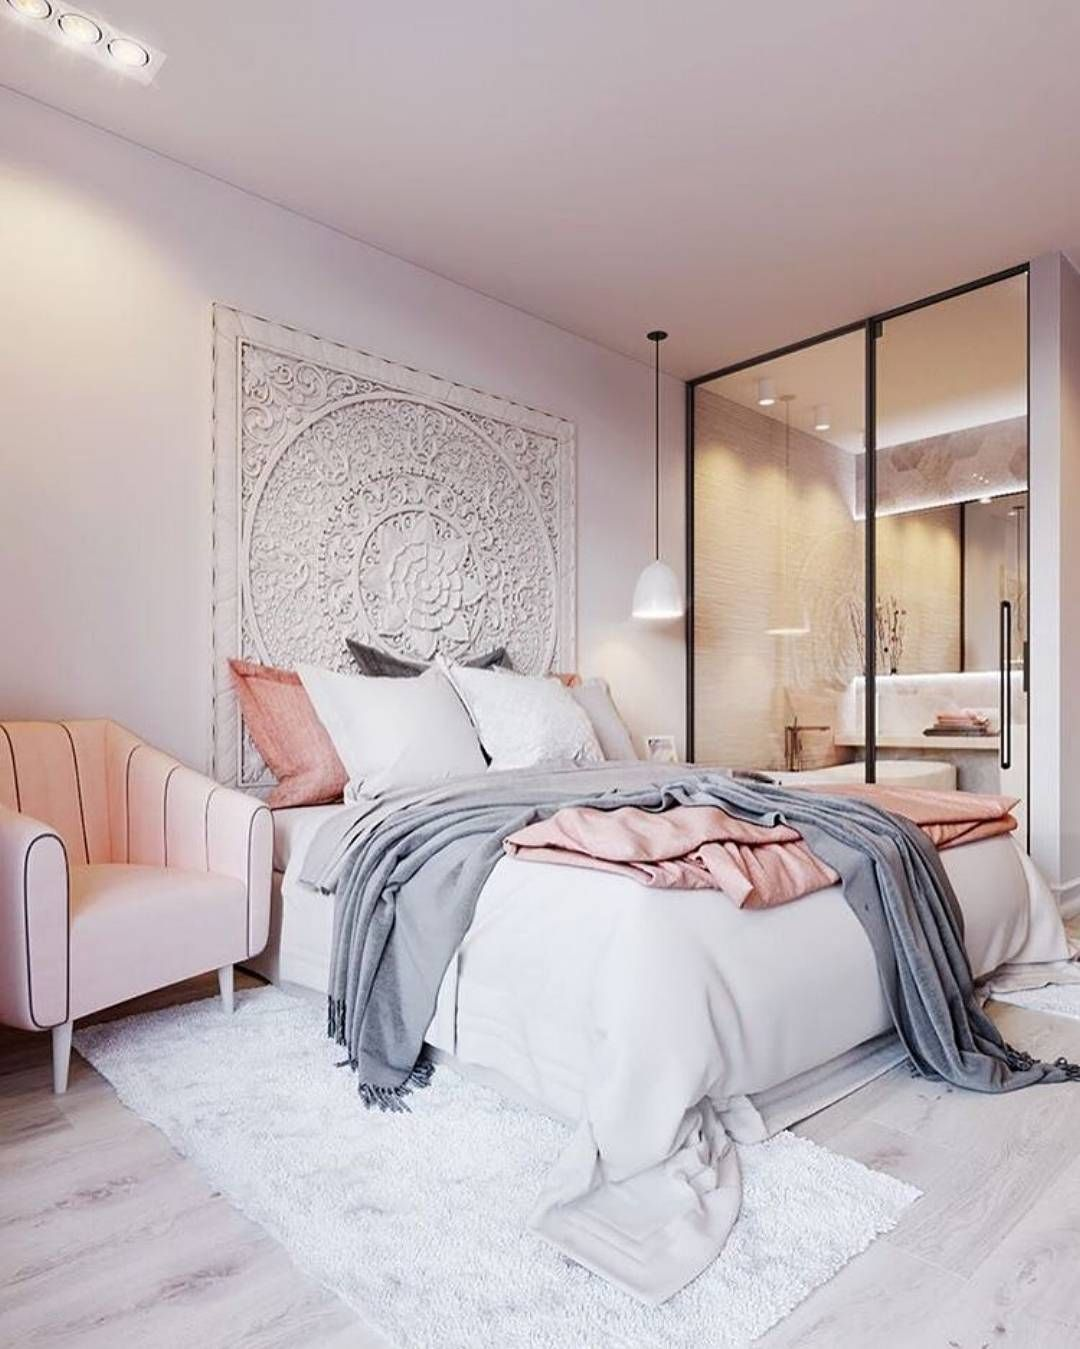 Wall Bedroom Decor Impressive Love The Design On The Wall 3  Home Design And Renovation Design Inspiration